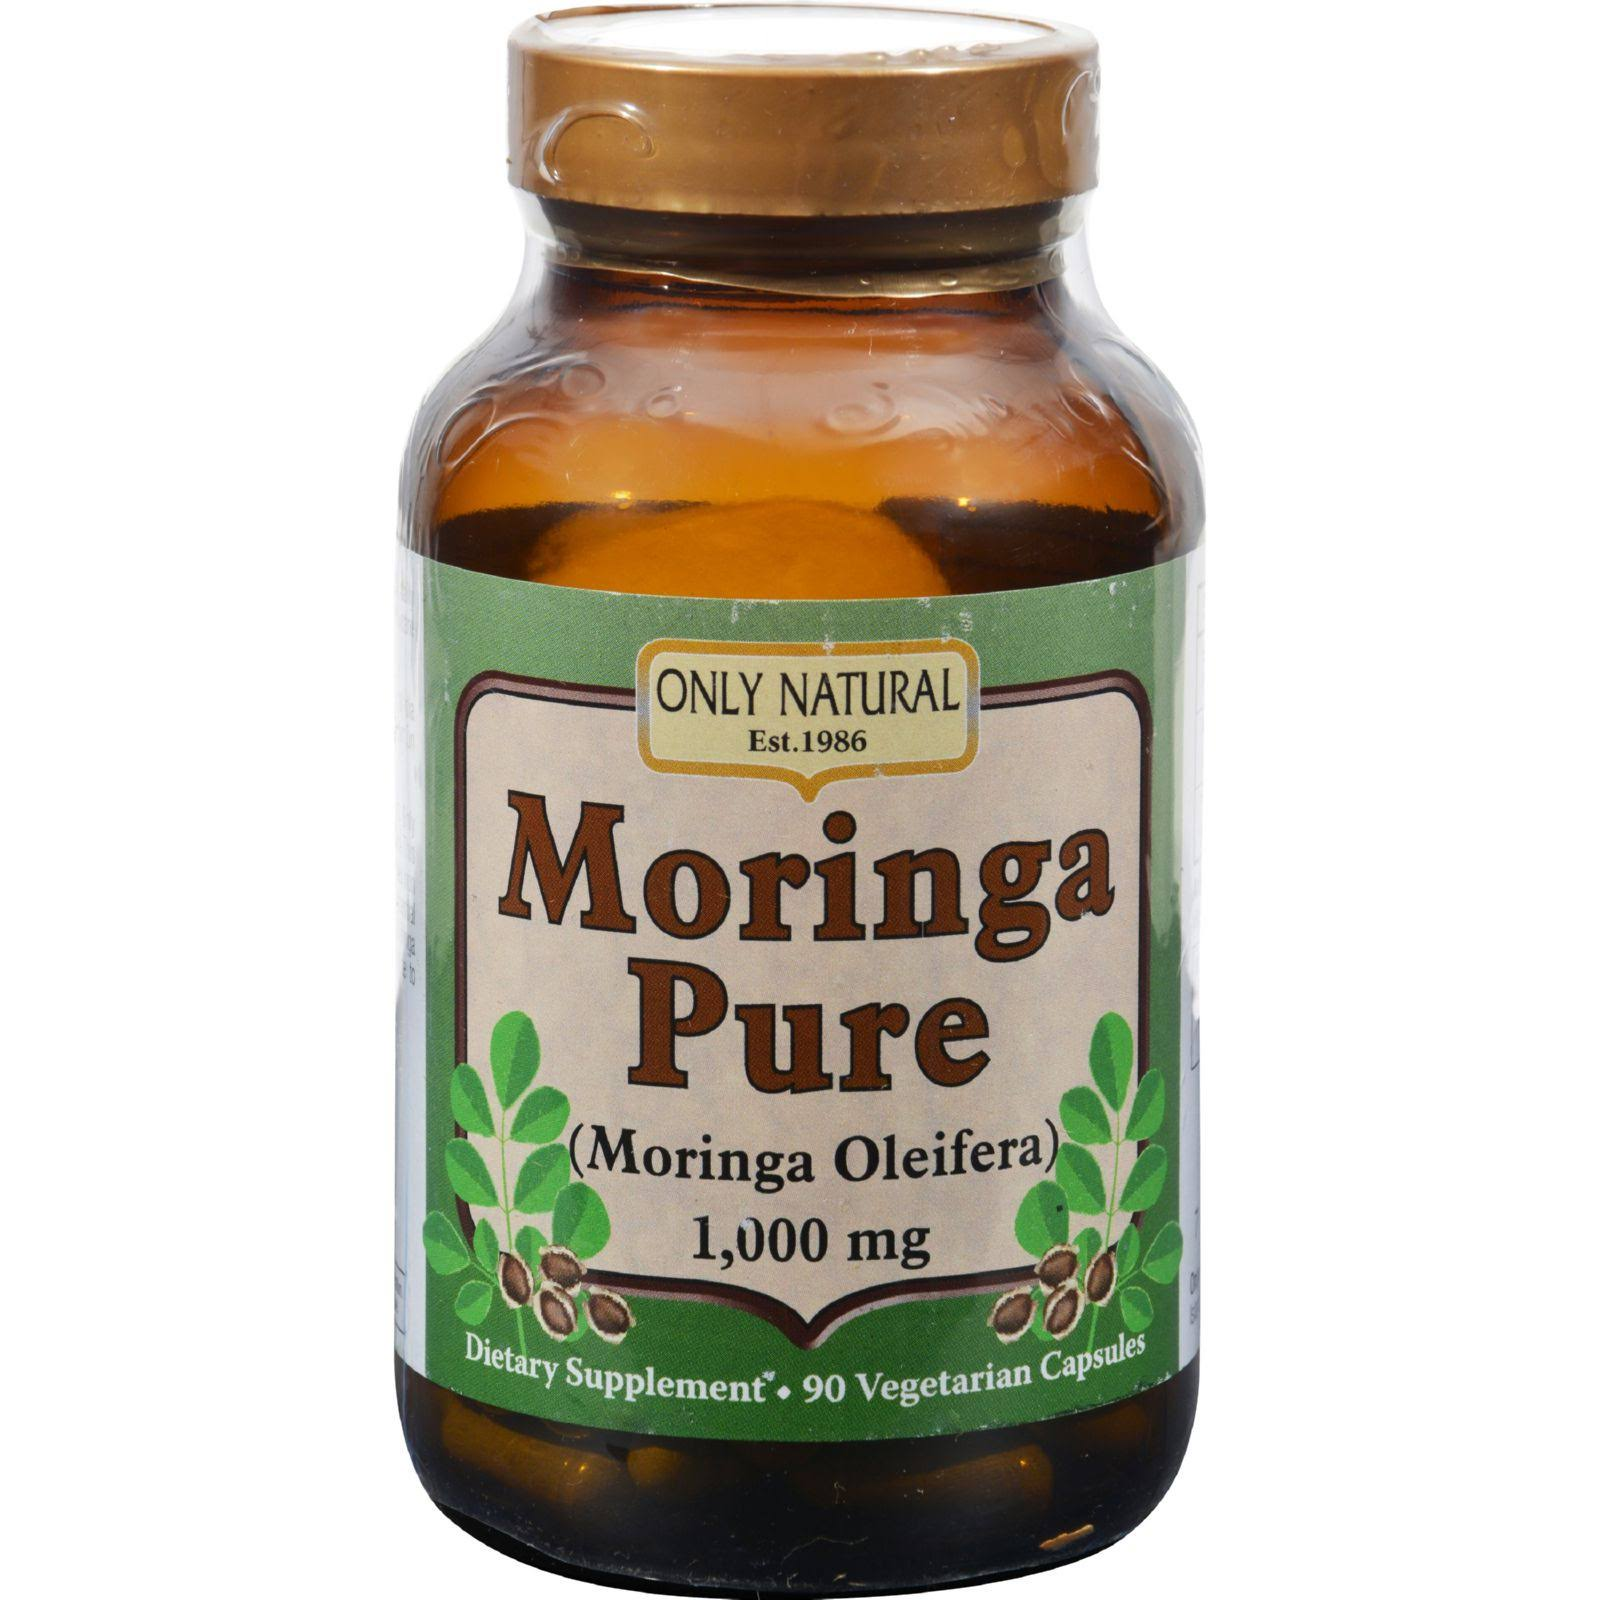 Only Natural Moringa Pure Dietary Supplement - 100mg, 90ct